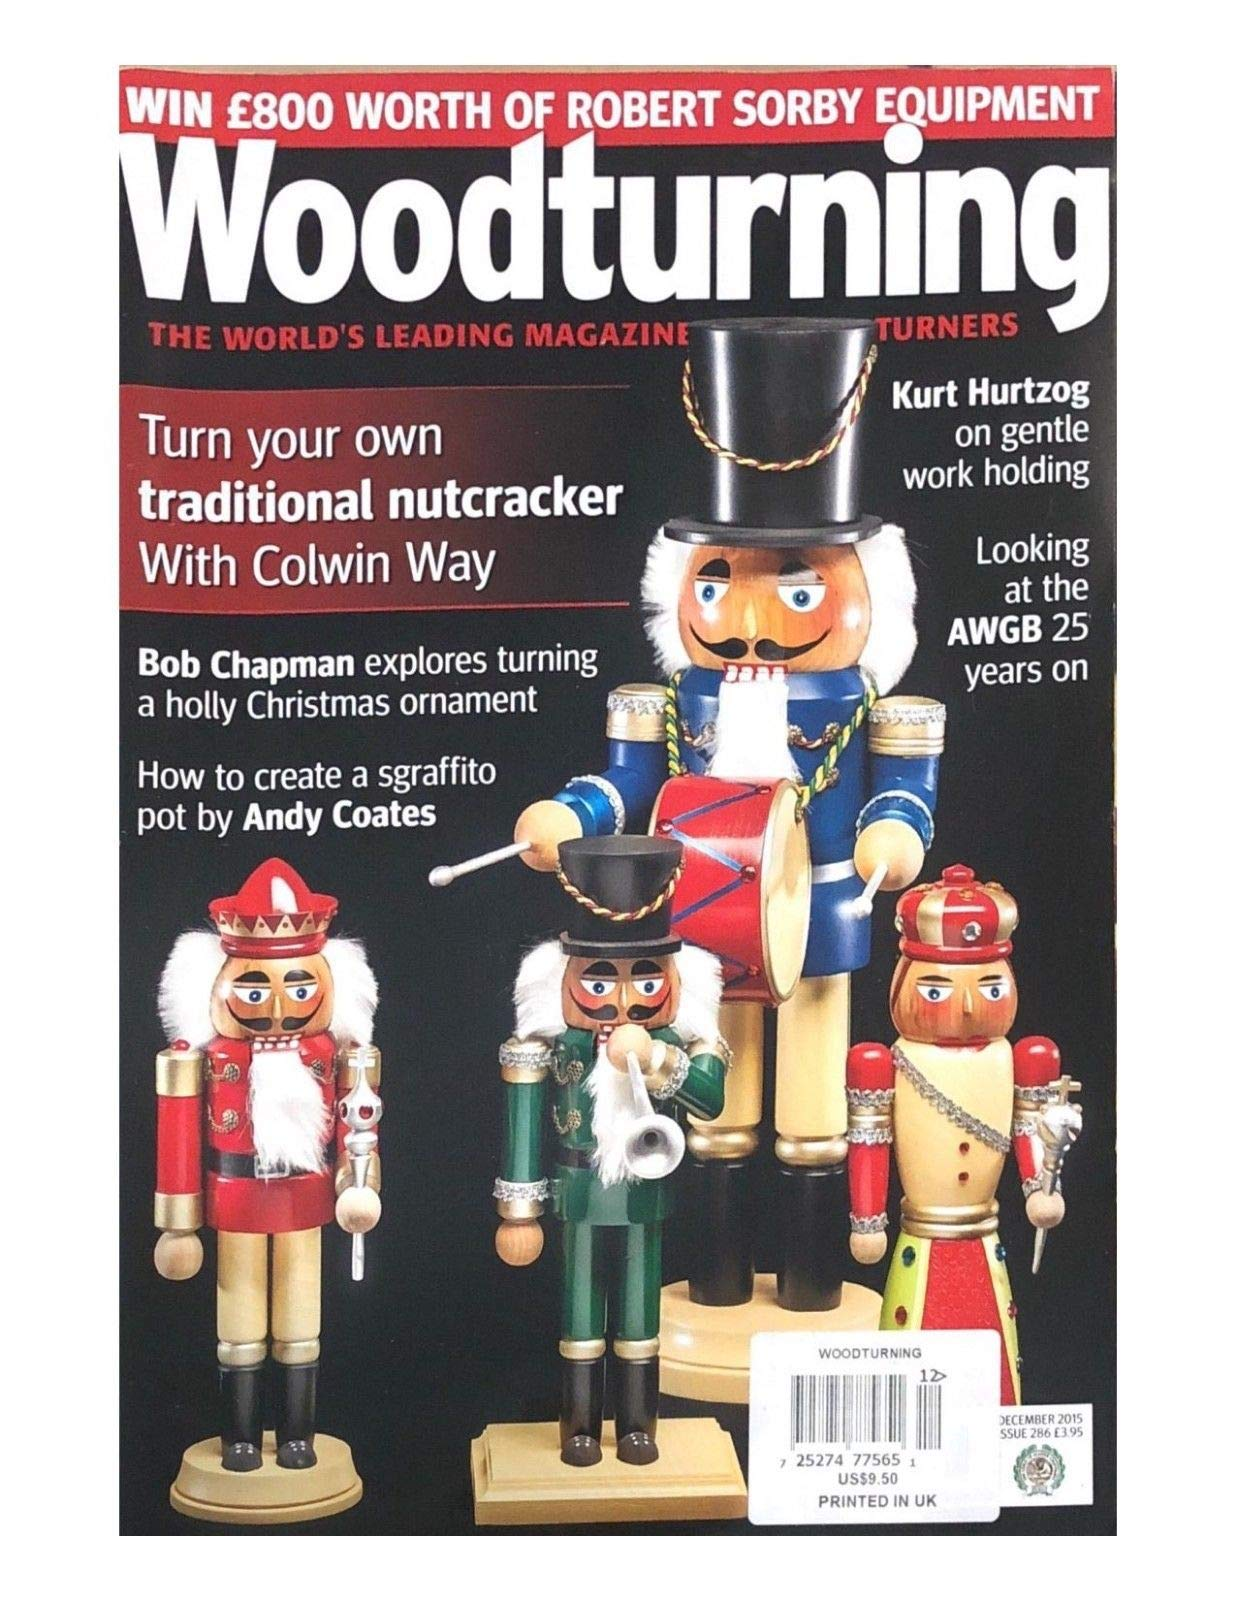 WOODTURNING,THE WORLD'S LEADING MAGAZINE FOR WOODTURNERS DECEMBER 2015 ISSUE 286